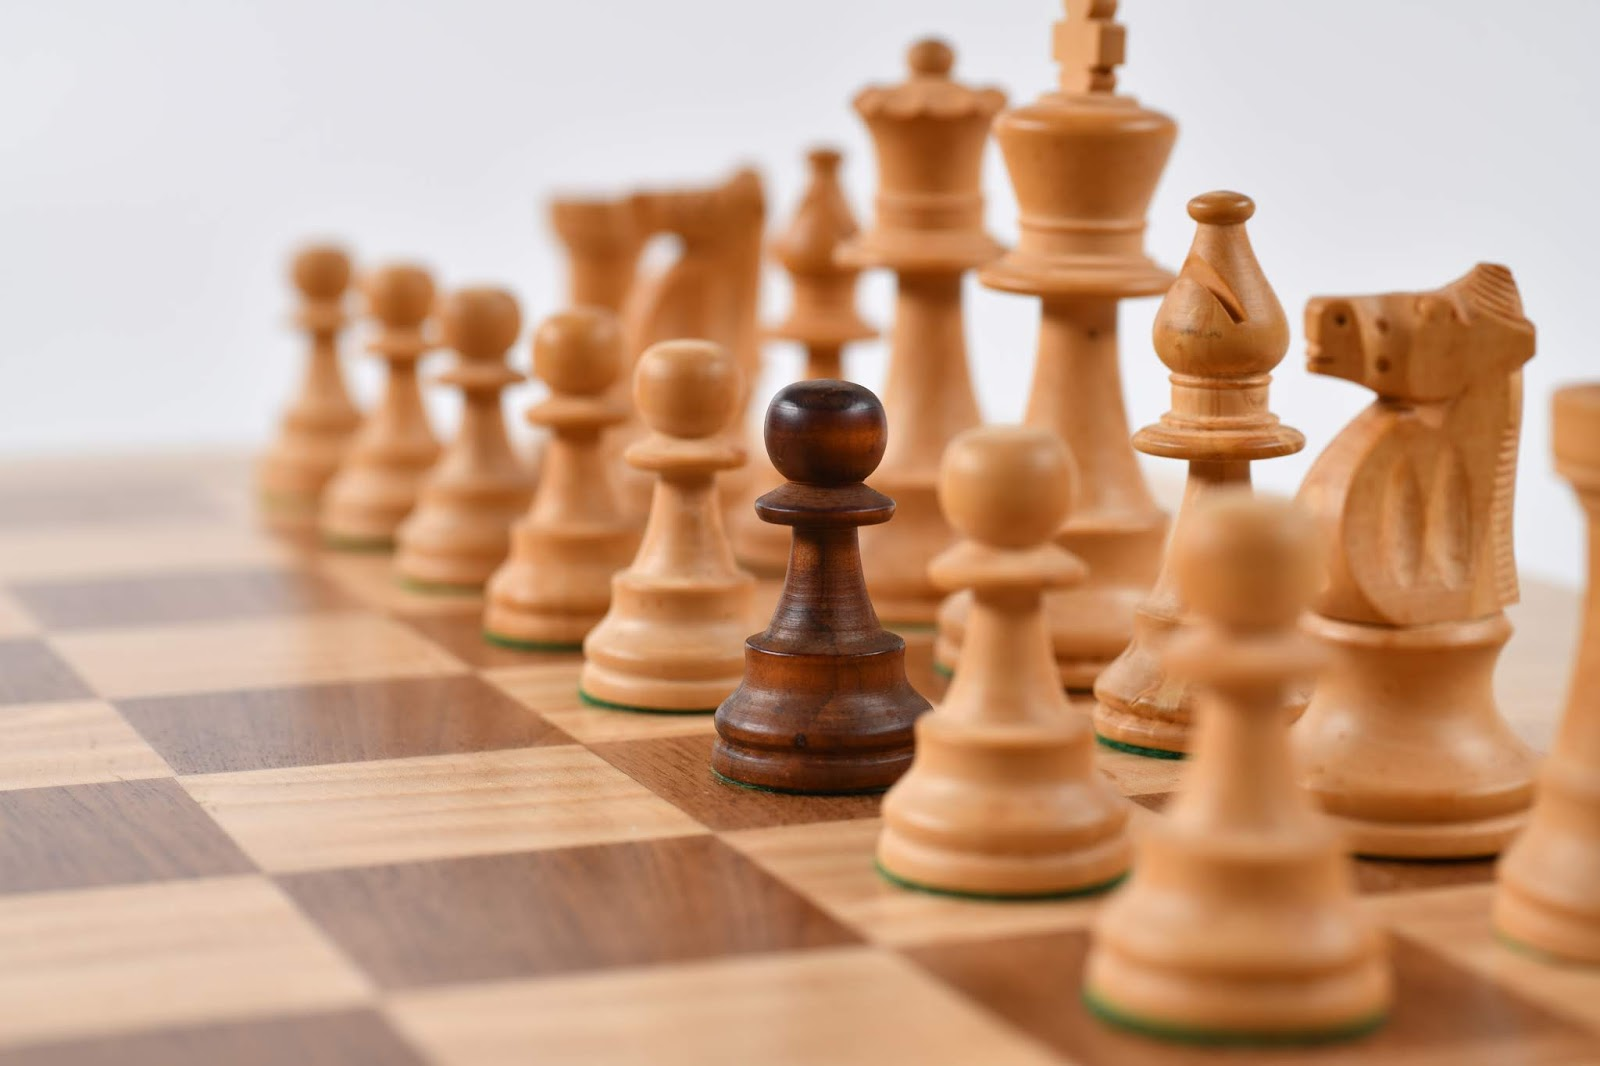 A close up of a beige and brown wood chessboard, focusing on the white/beige pieces, but instead there is one black/brown pawn where a white/beige pawn should be